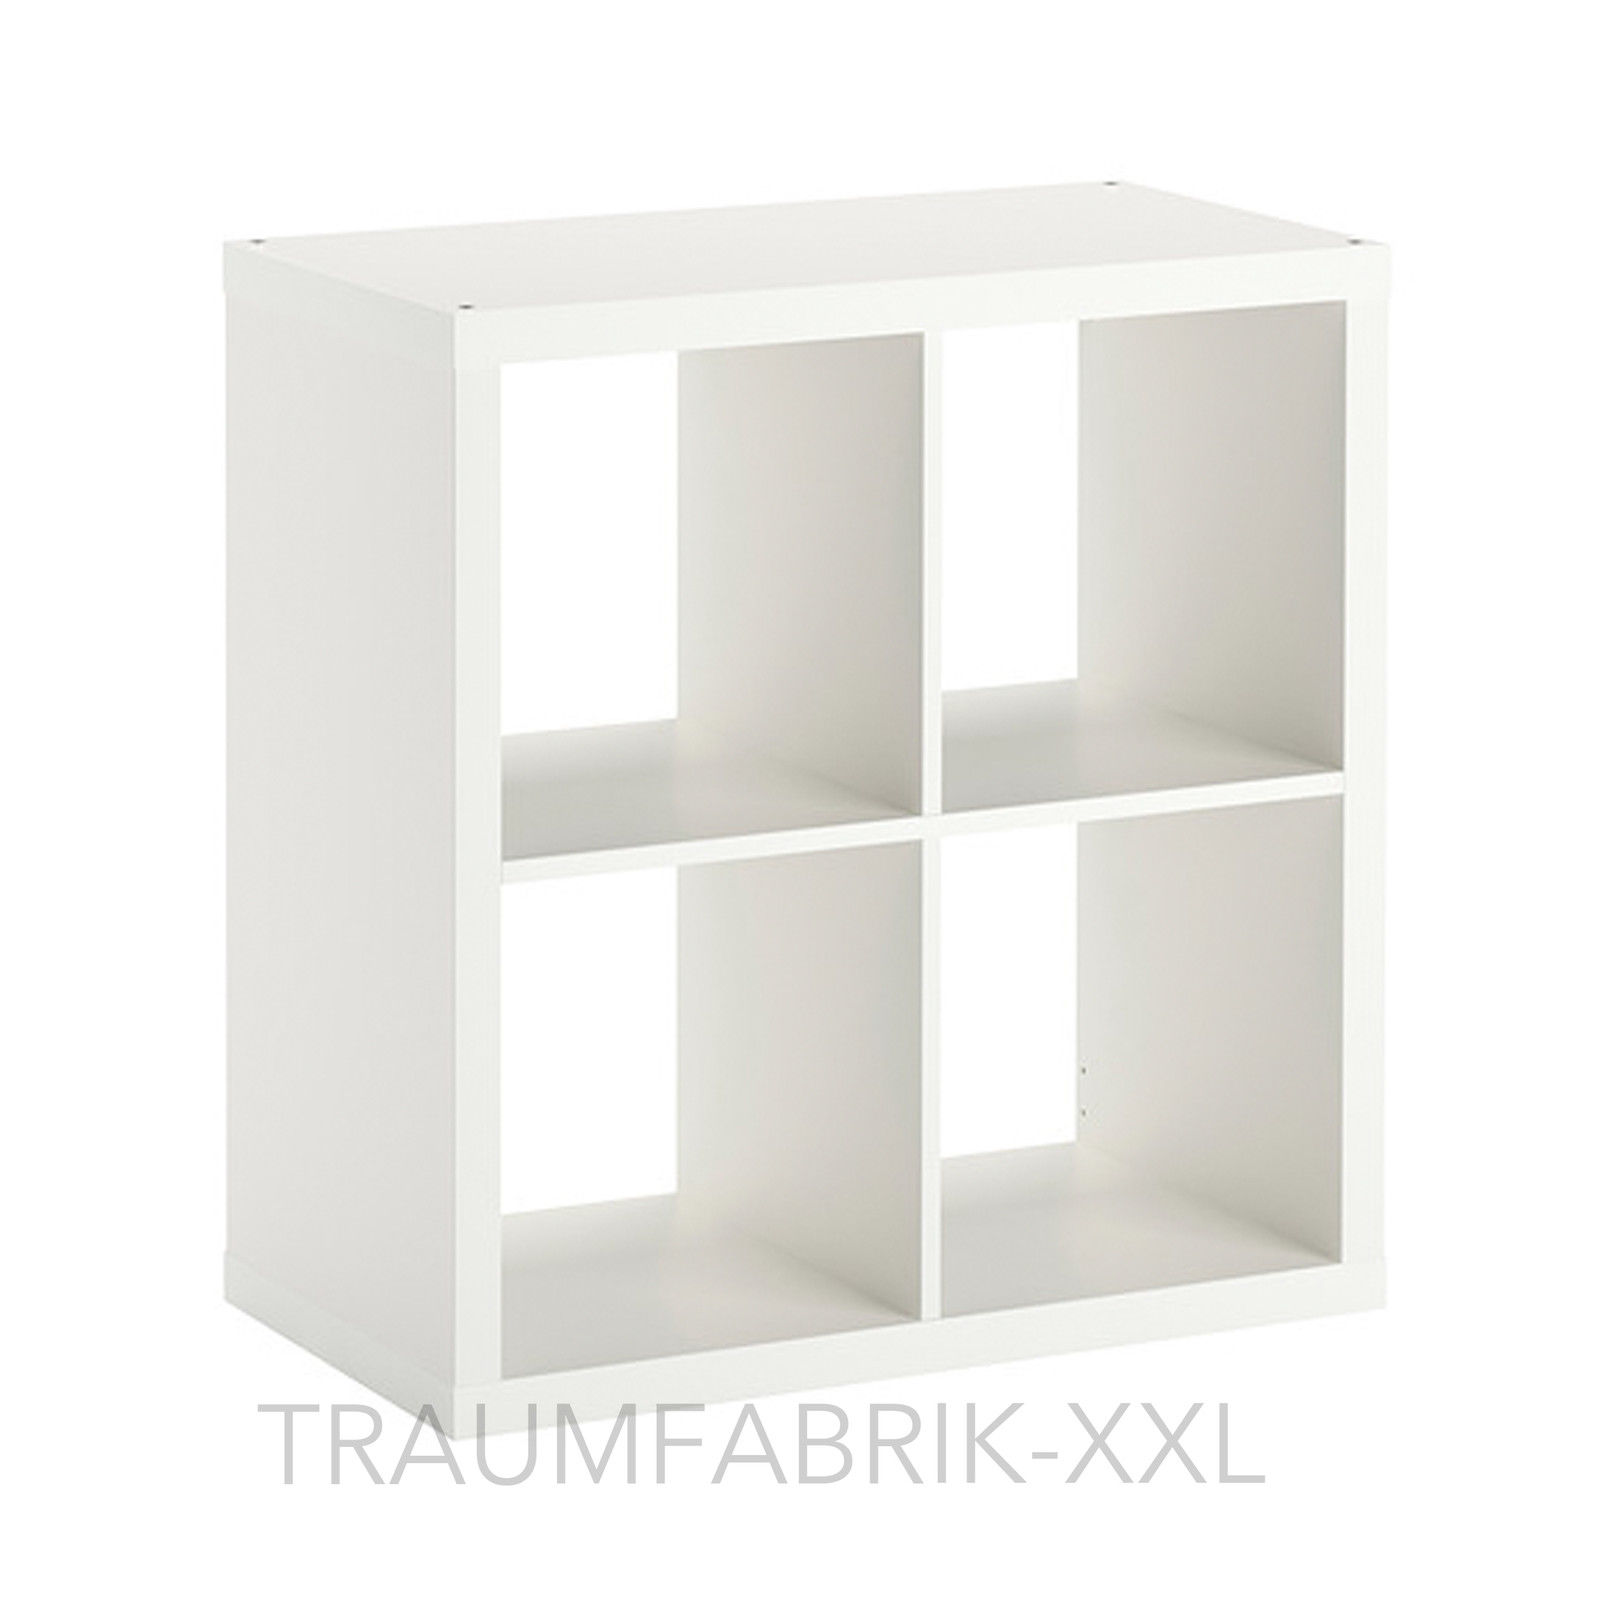 IKEA STAURAUMREGAL 77×77 cm BÜCHERREGAL KINDERZIMMER REGAL WANDREGAL ...